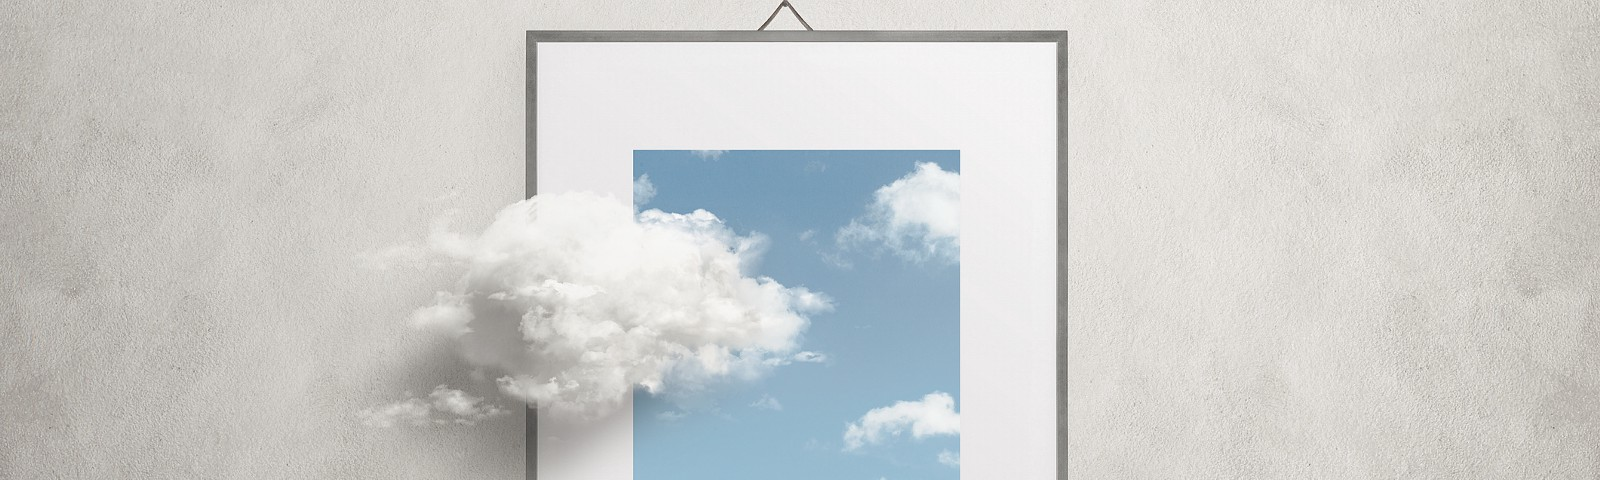 Clouds in a picture frame.